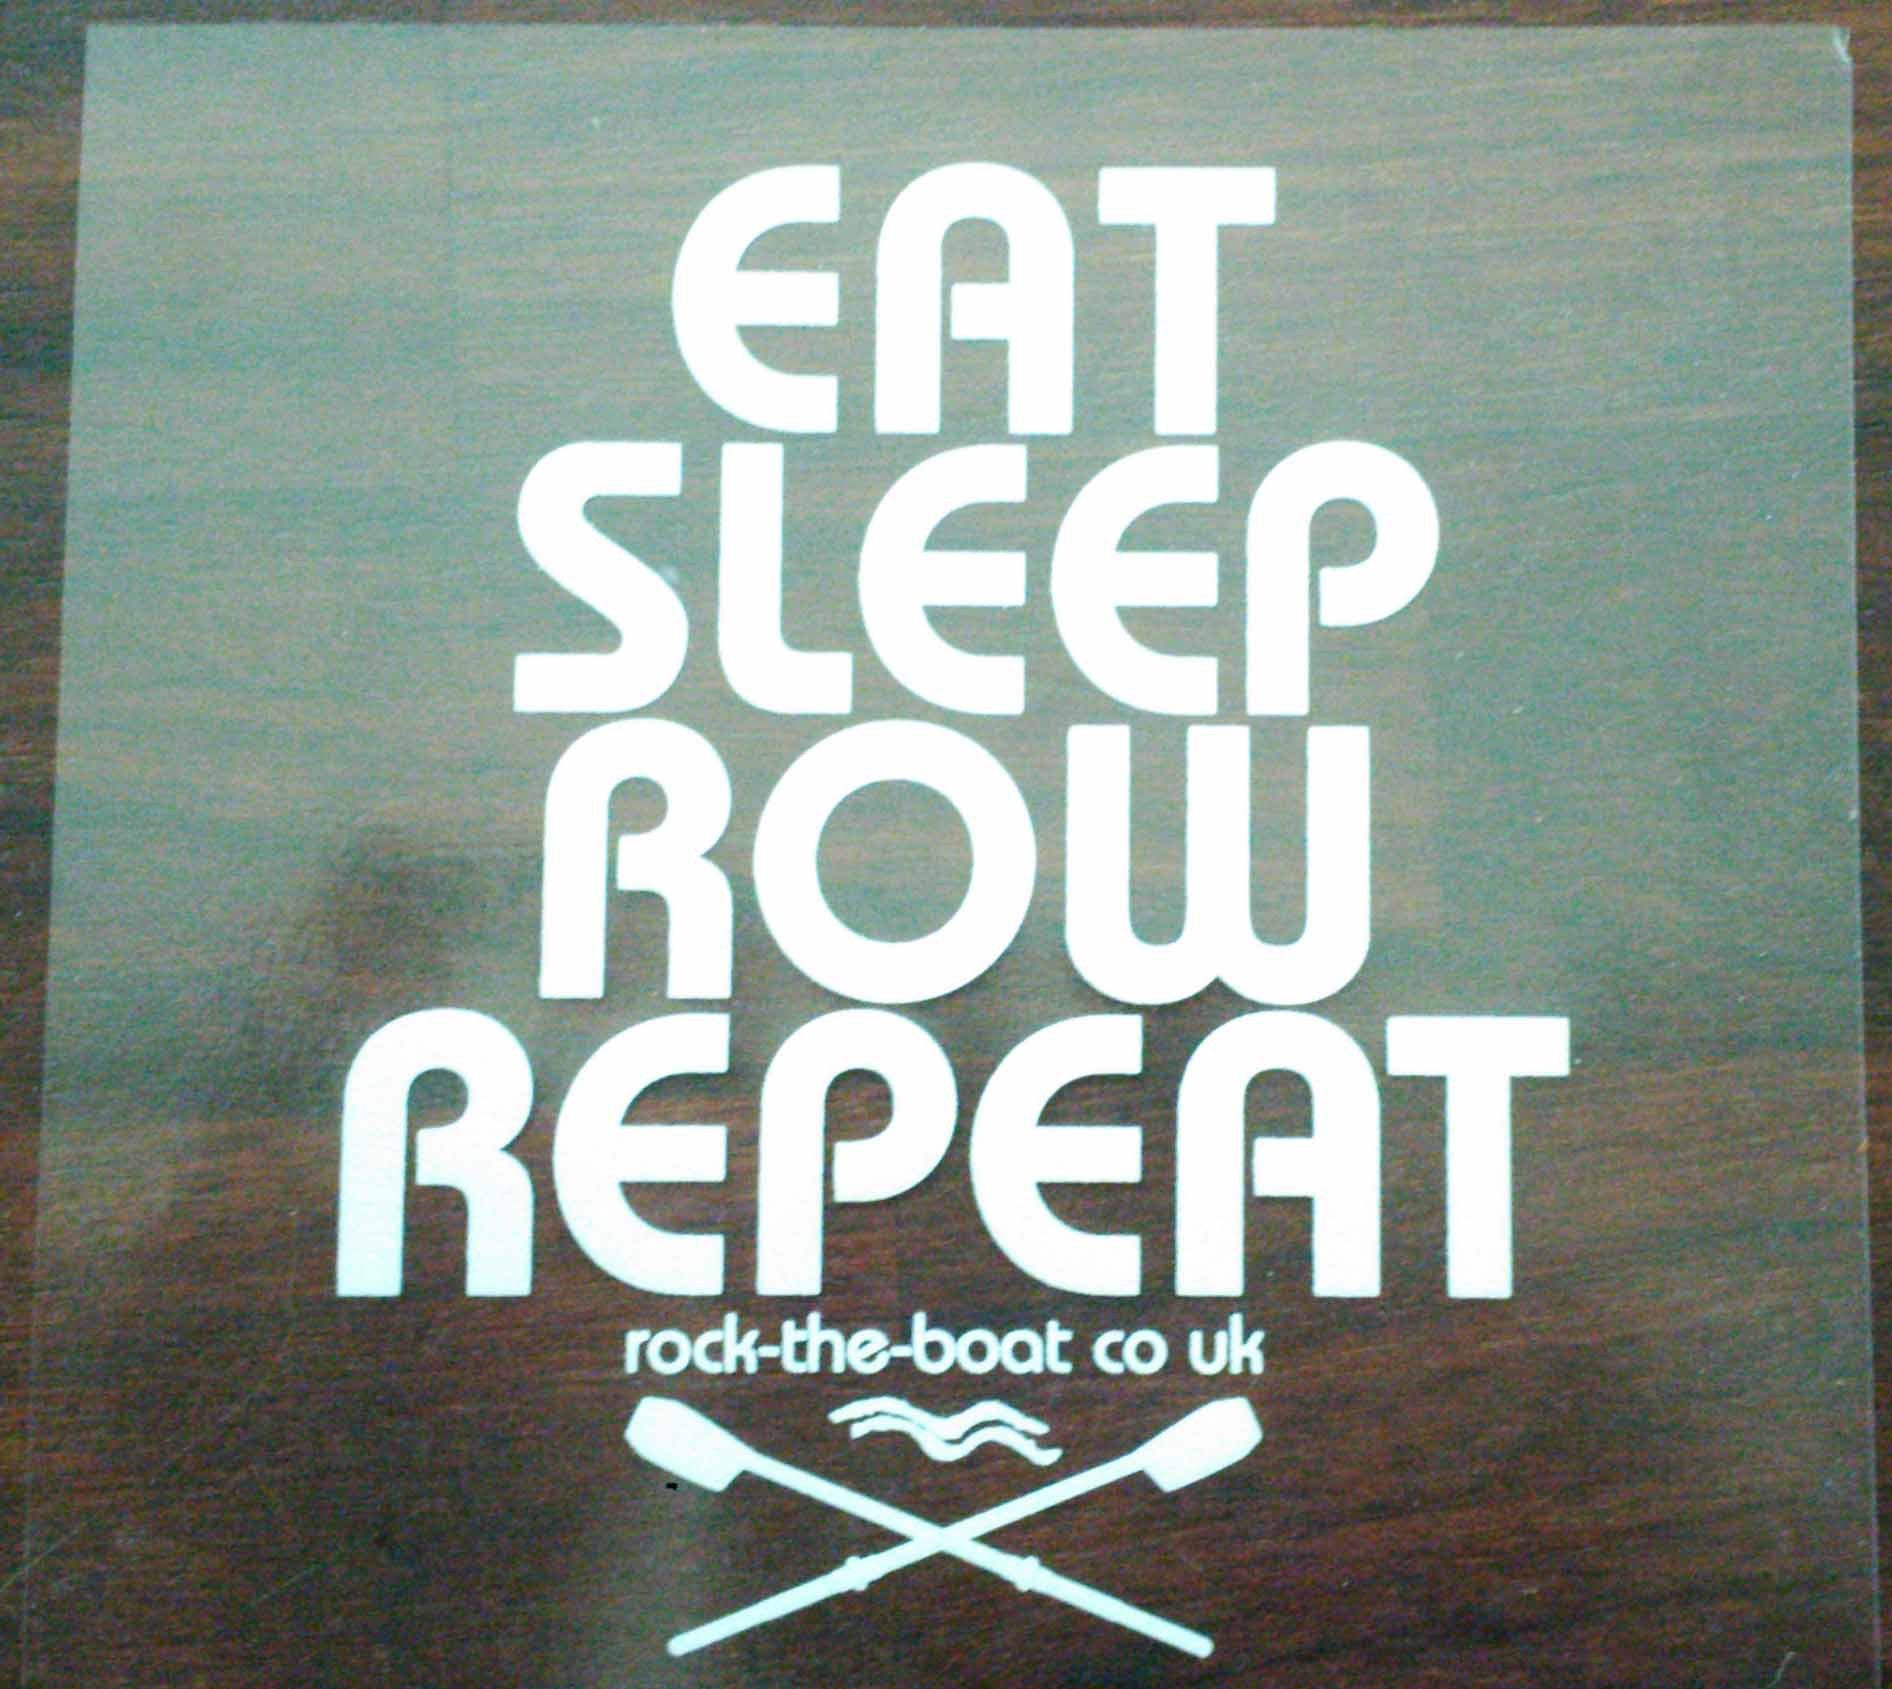 Eat sleep row repeat window sticker